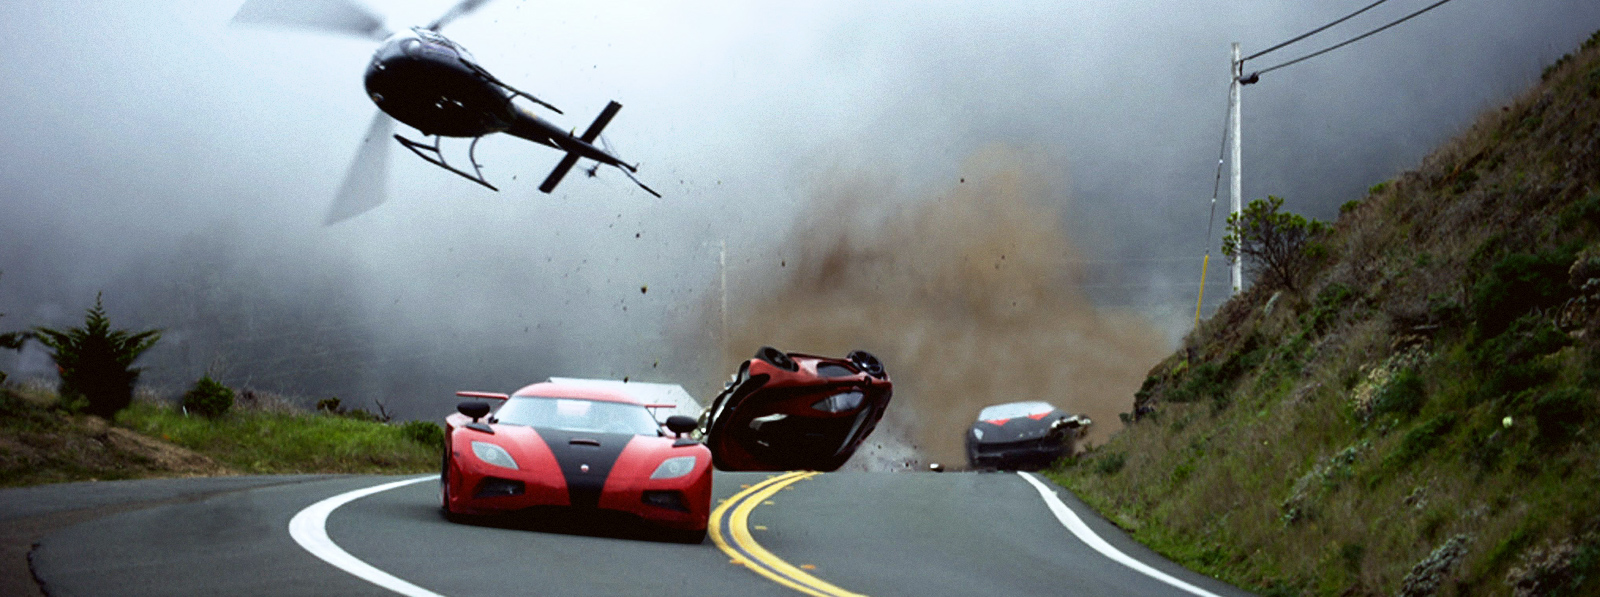 Images from Need for Speed, 2014